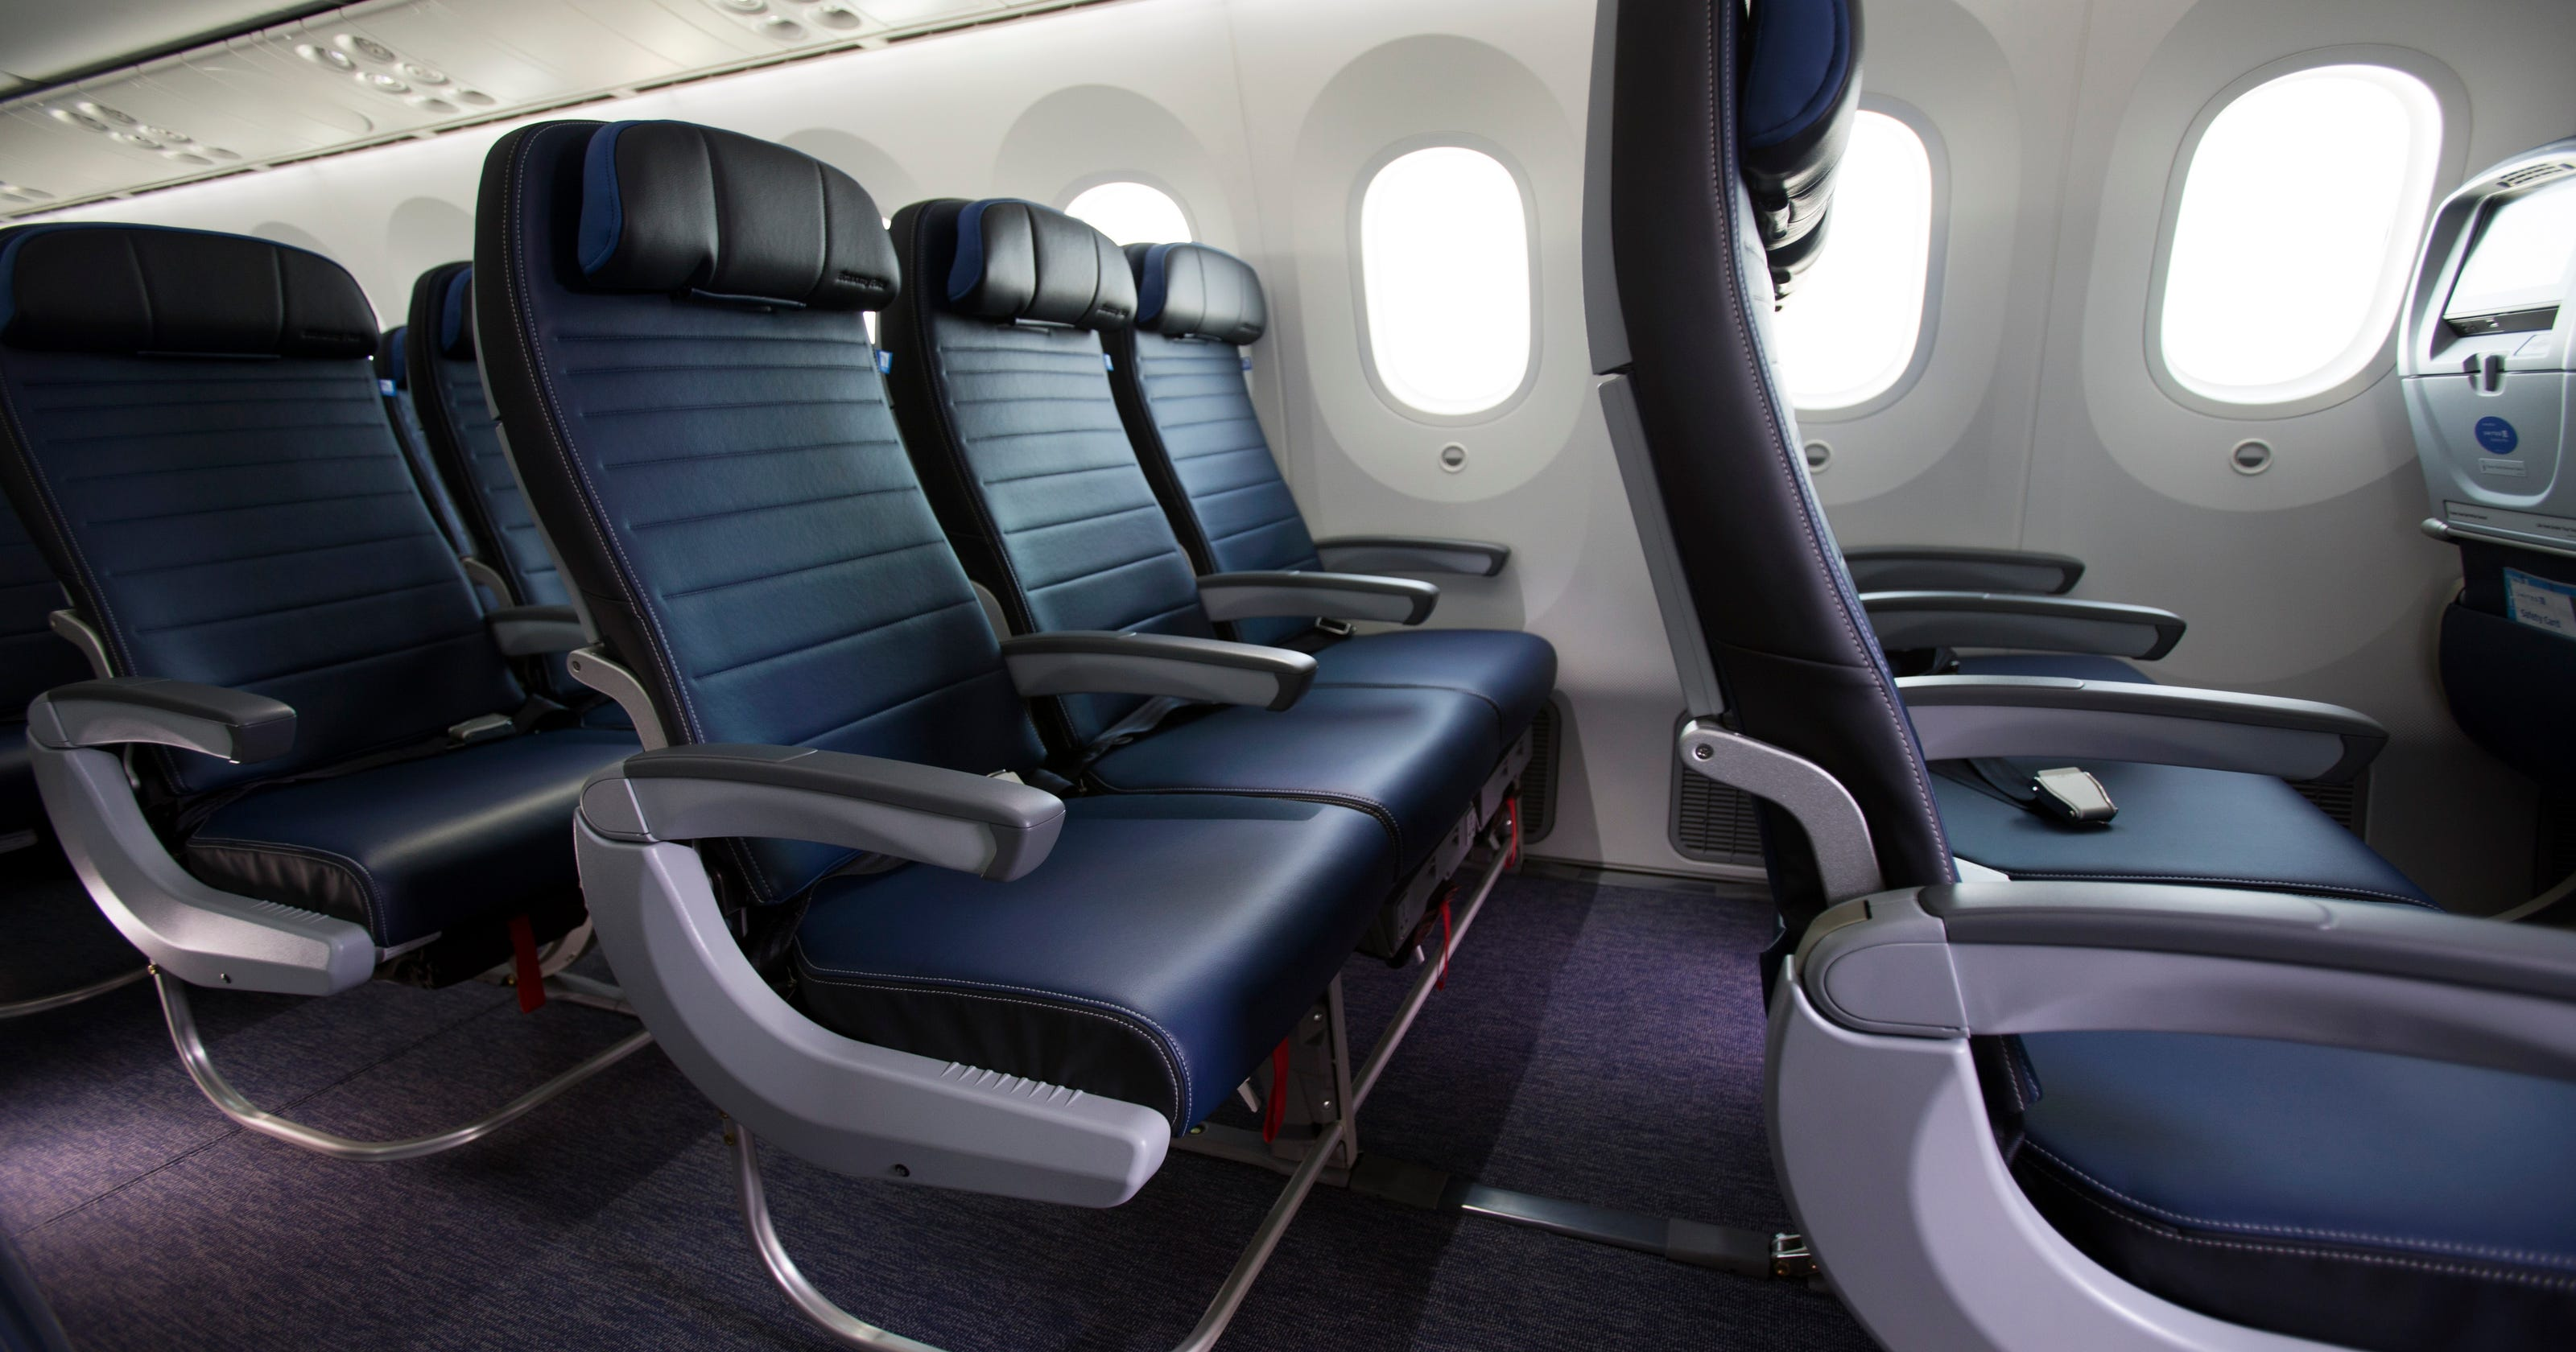 3f671cce9b94 United Airlines adds bundled perks packages to Economy Plus